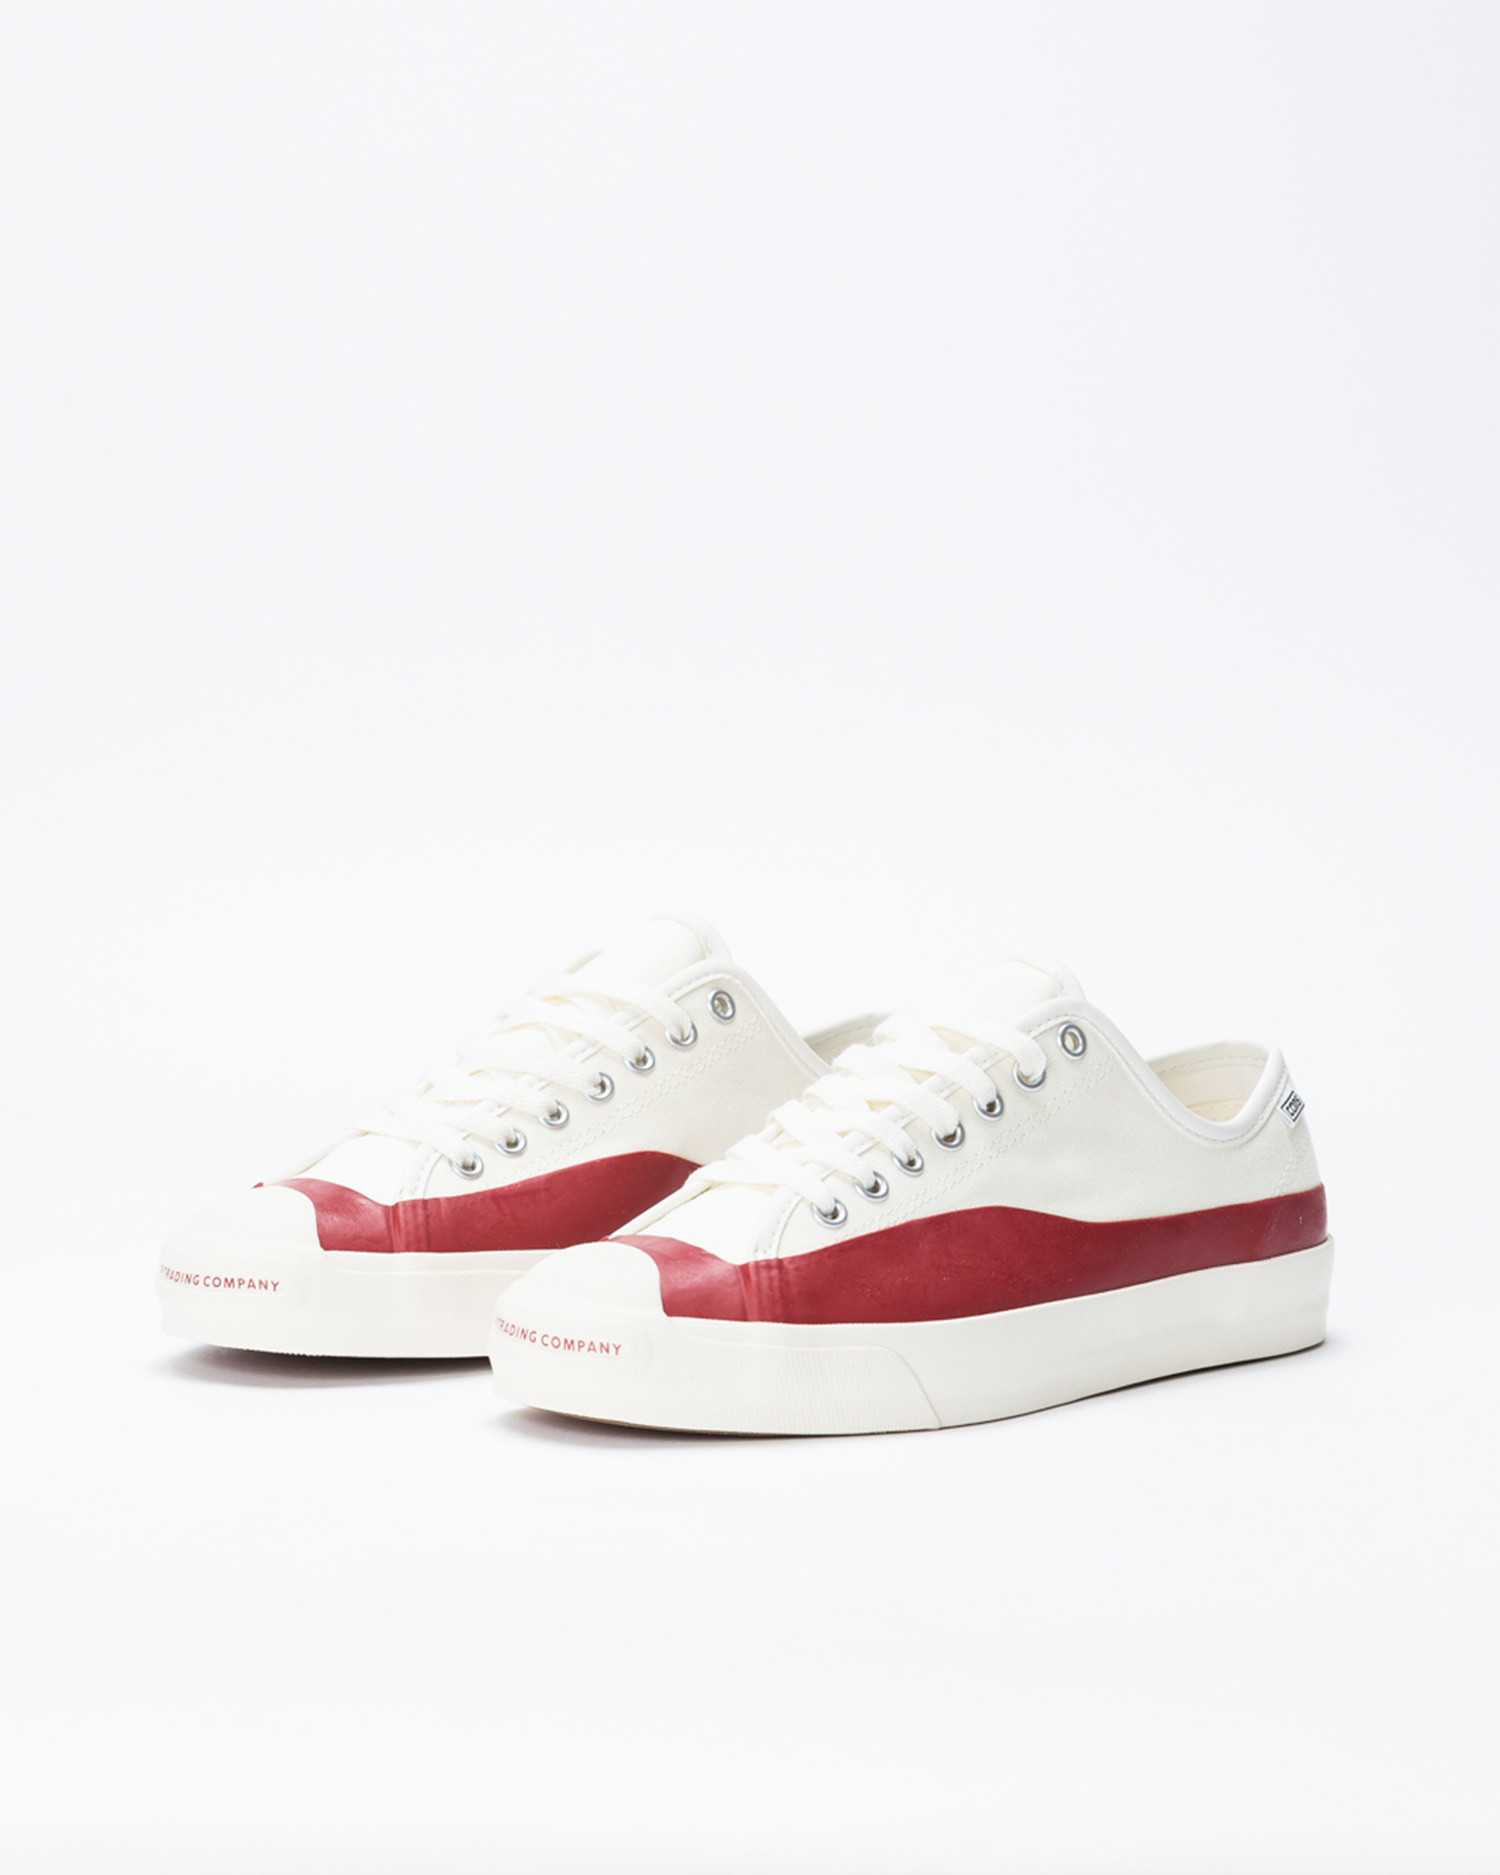 Converse Jack Purcell Pro Pop Trading Egret/Red Dahlia/Egret